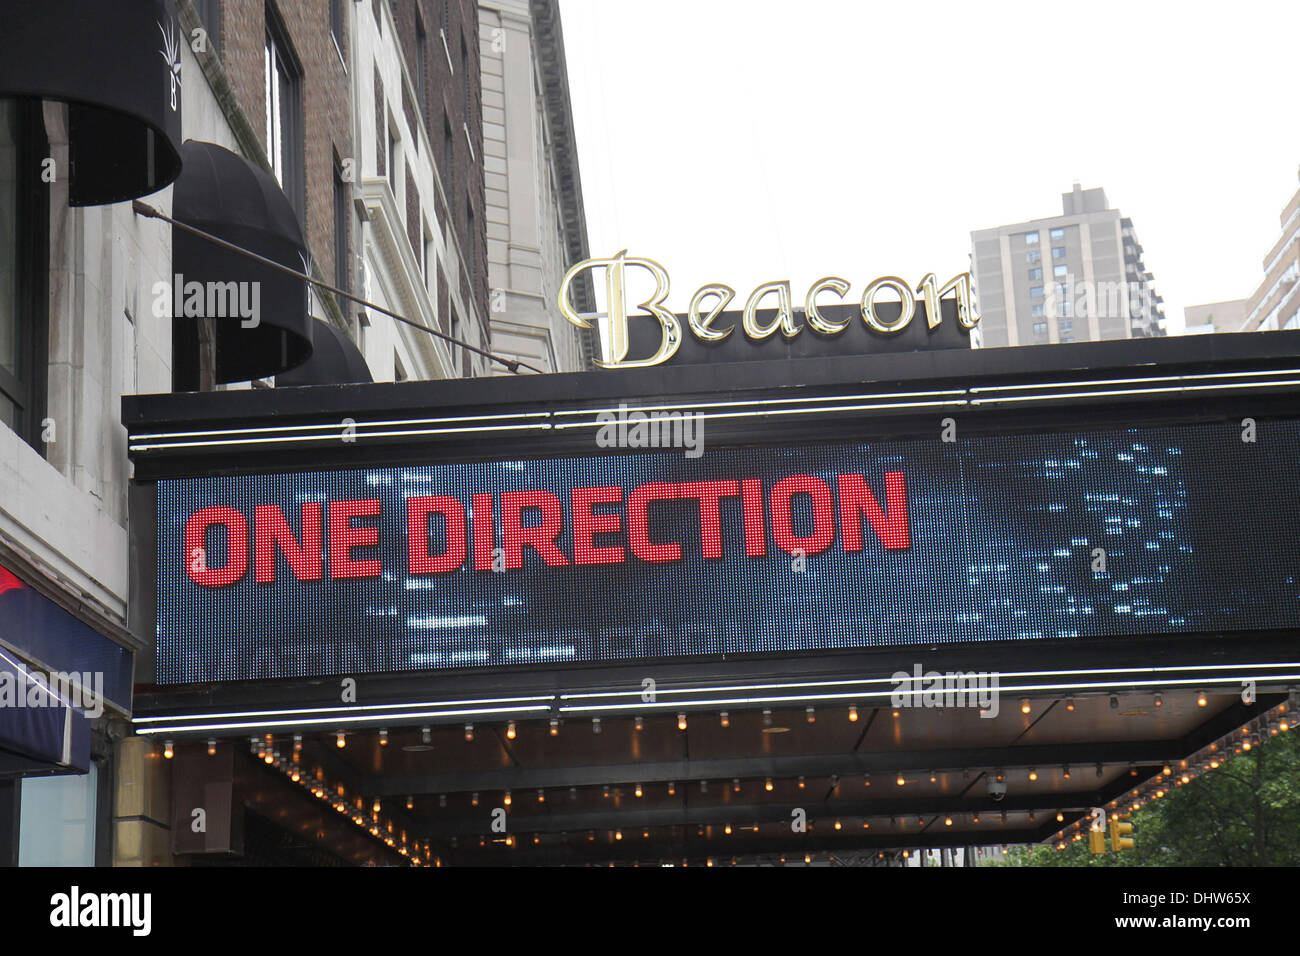 Hysterical fans at the Beacon Theatre for the sold out One Direction concert. New York City, USA - 26.05.12 - Stock Image